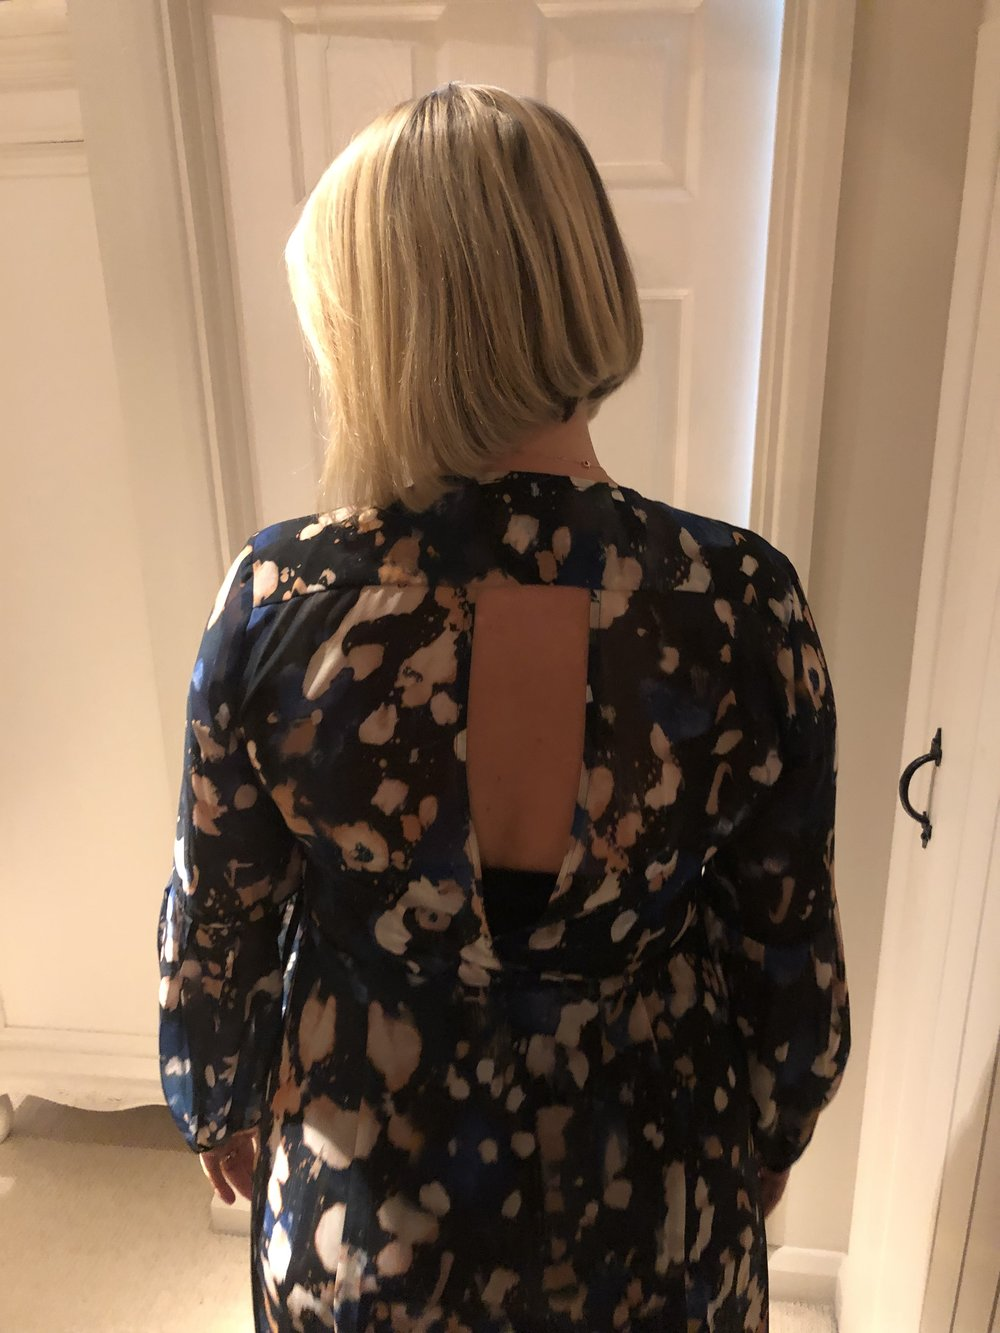 I got home from the wedding and Chris just happened to mention how nice the back of the dress was. I didn't know till he took this photo and showed me that it had a key hole design at the back. It is indeed a very nice feature. Hahahahaha